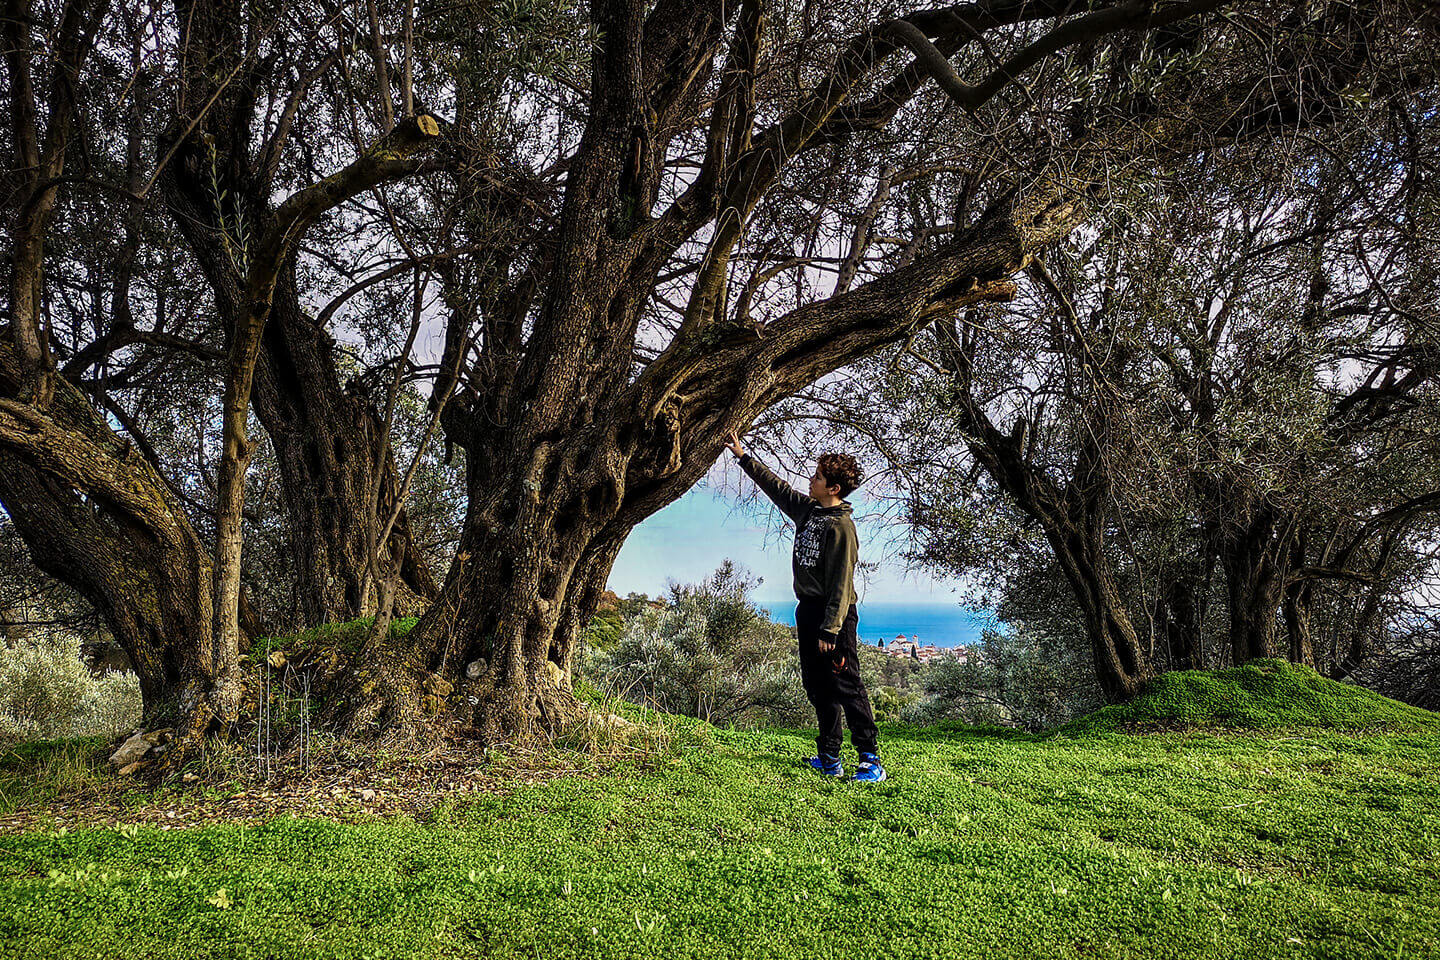 Adopt a Chios Olive Tree